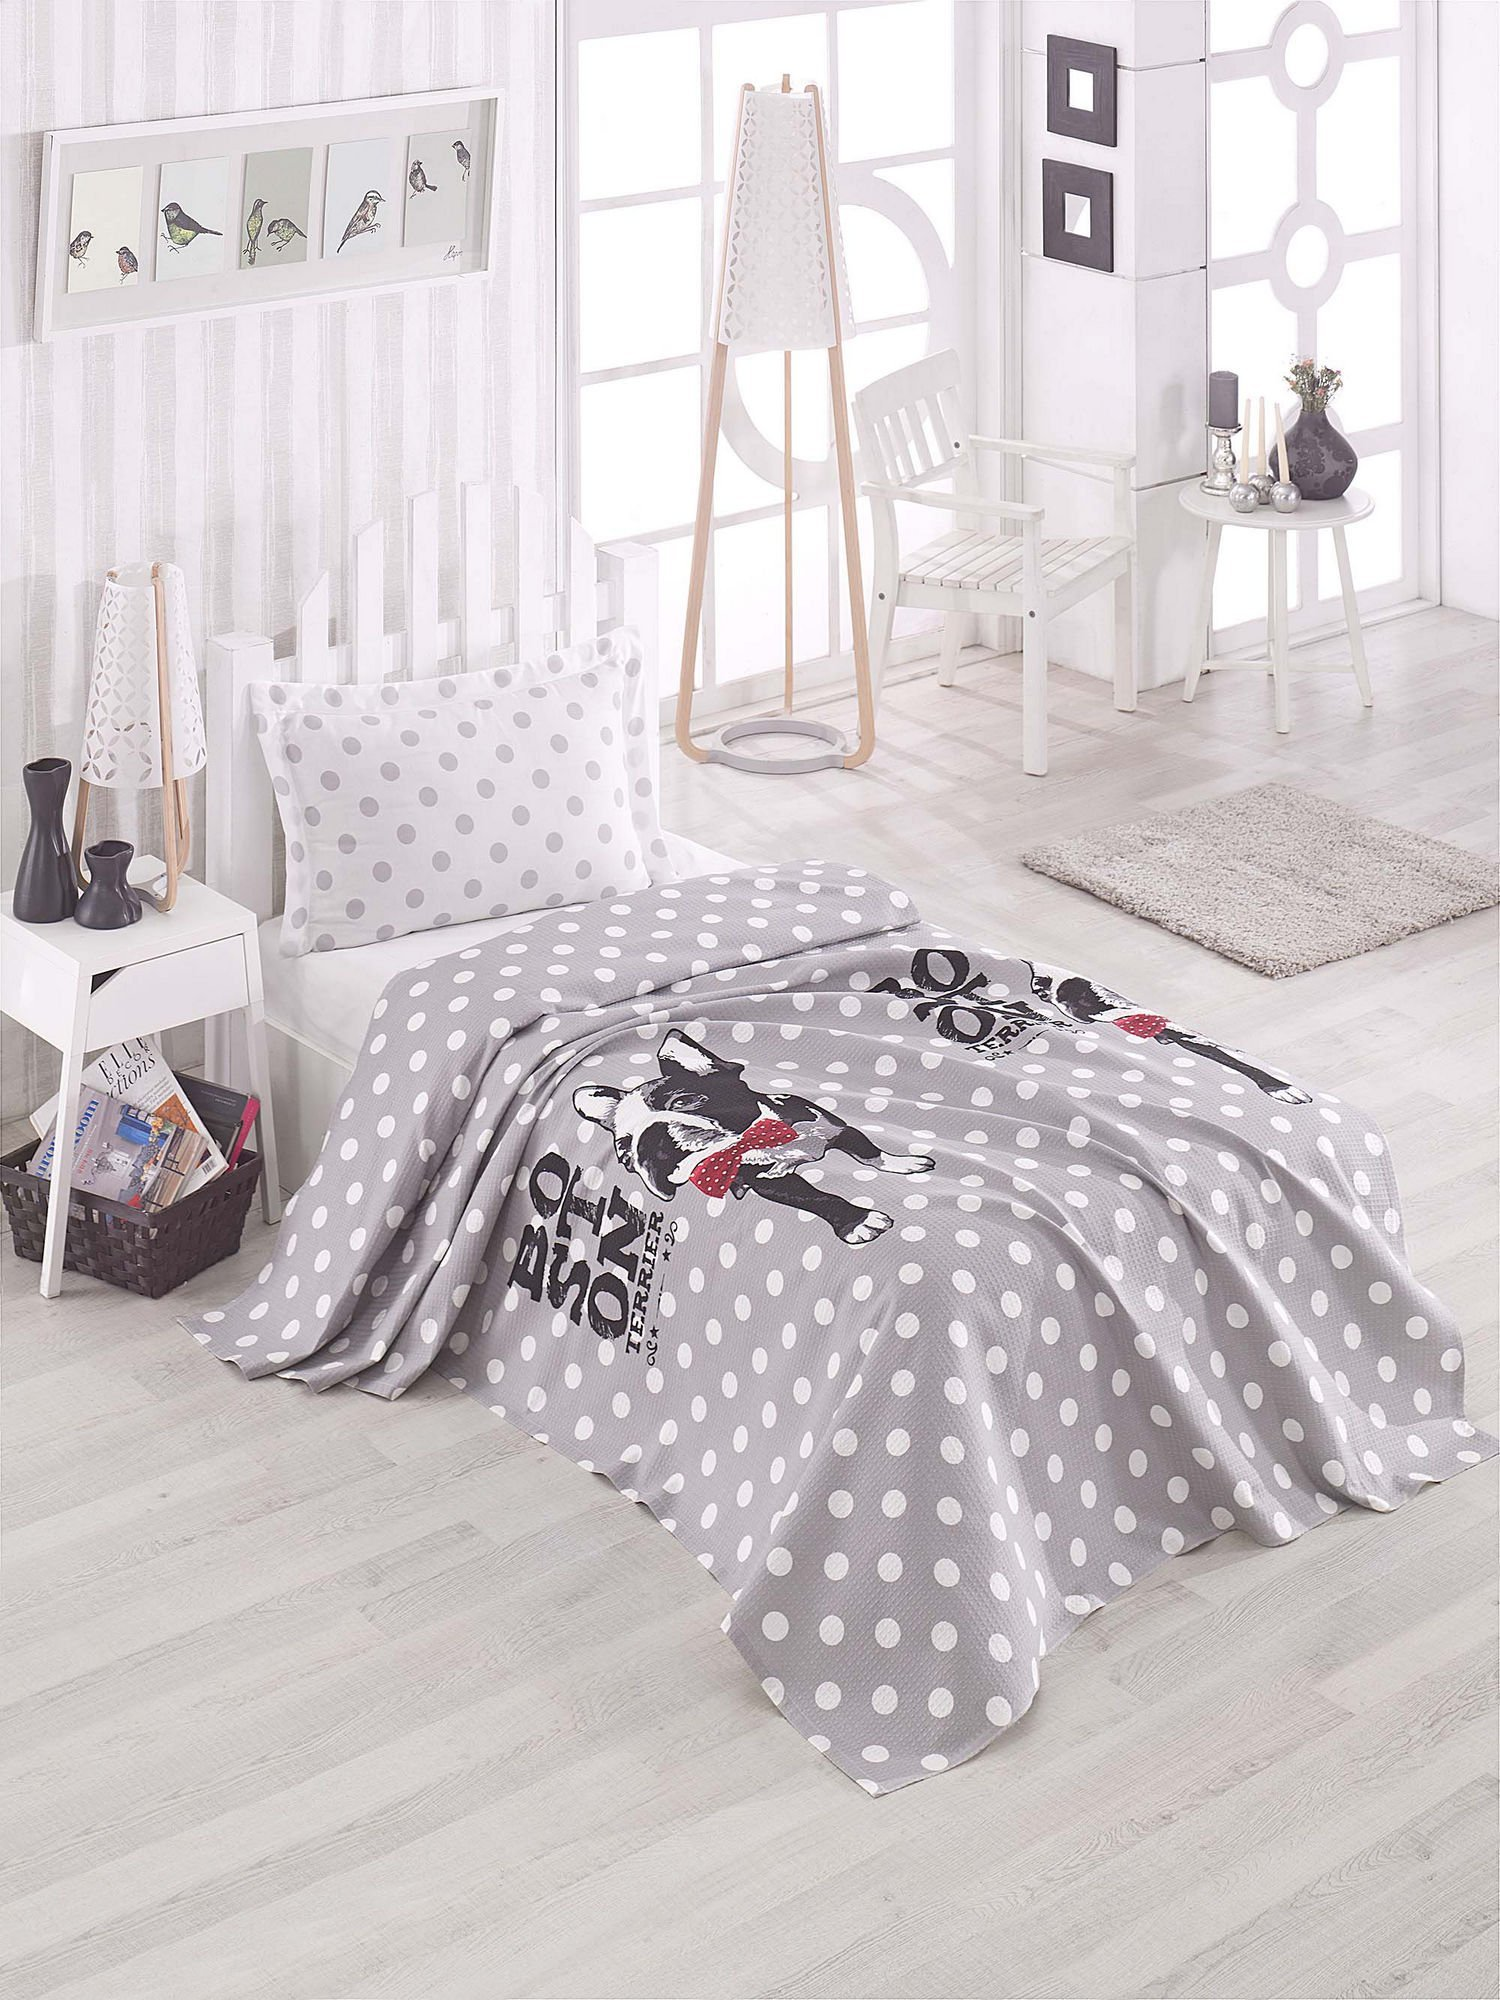 LaModaHome Luxury Soft Colored Bedroom Bedding 100% Cotton Single Coverlet (Pique) Thin Coverlet Summer/Bosion Terier Dog Animal Spot Bow Tie Grey and White/Single